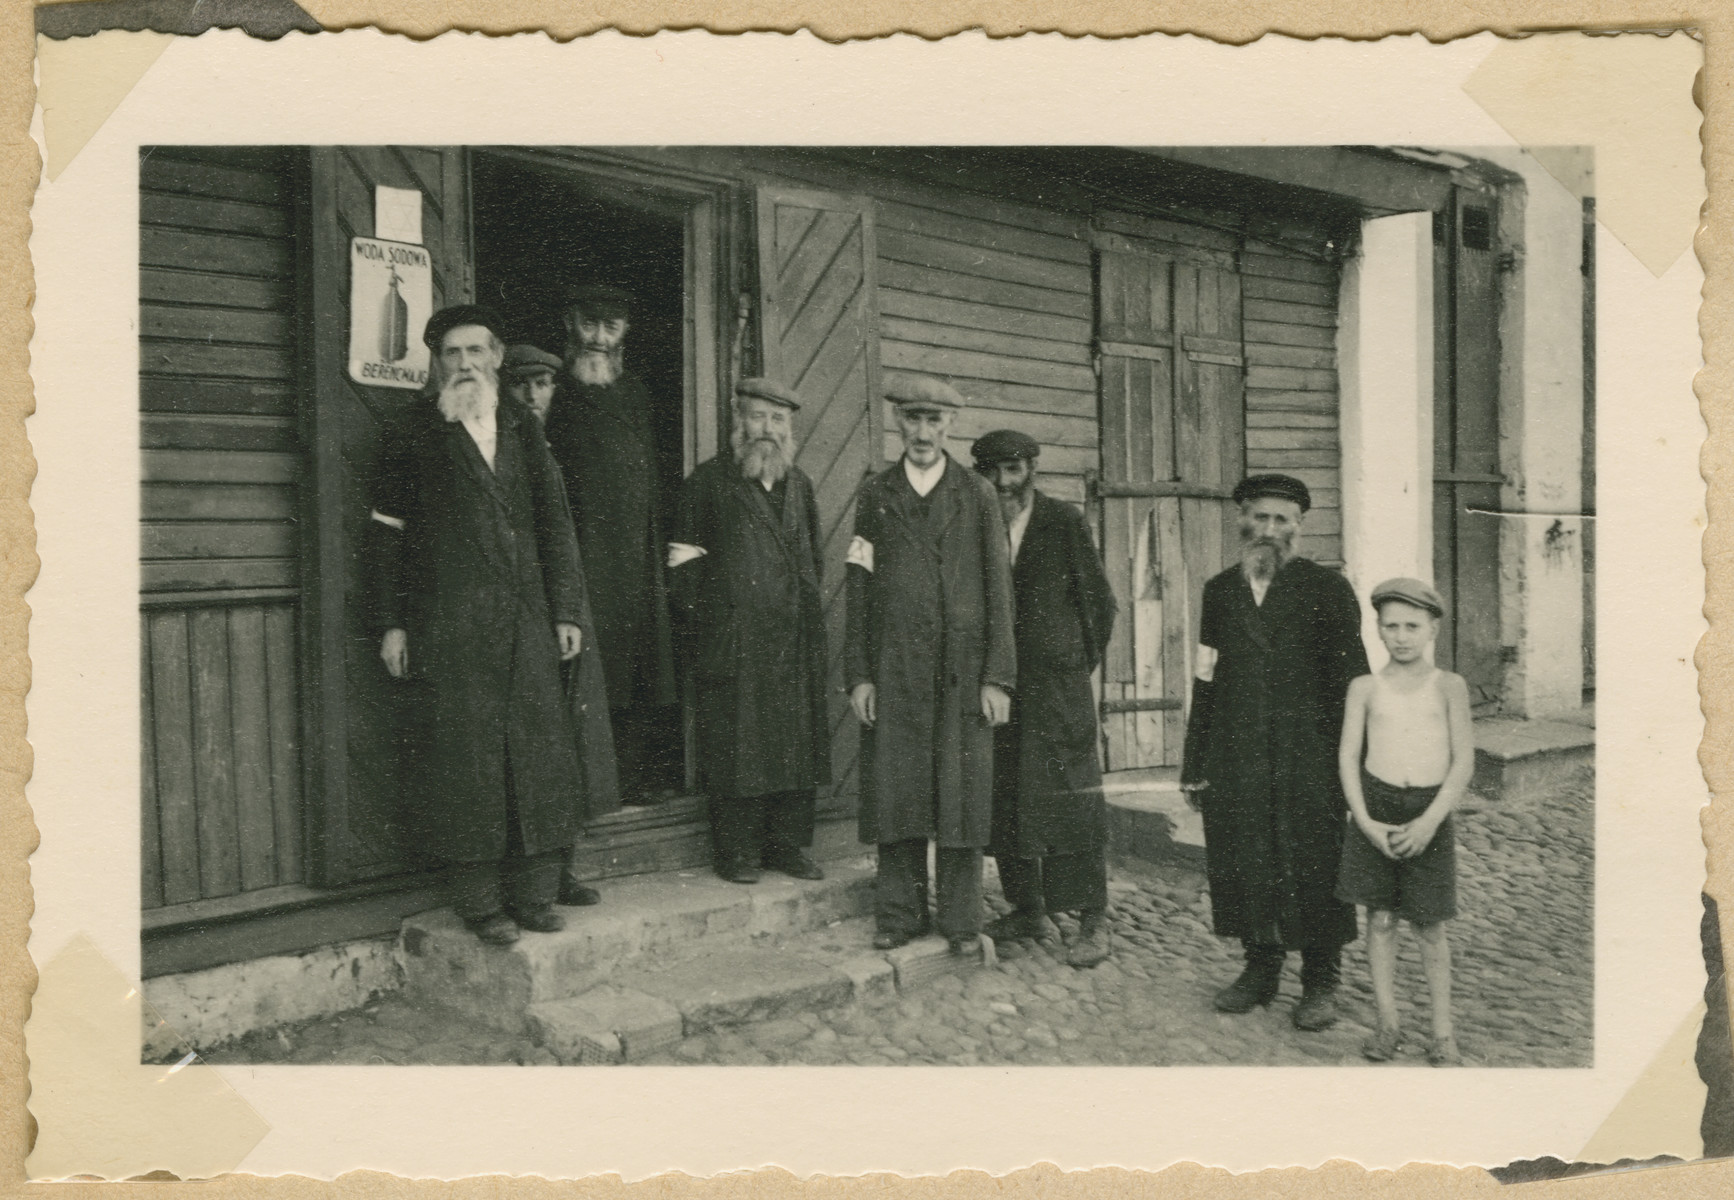 A group of Jewish men wearing armbands poses outside a building in Deblin-Irena